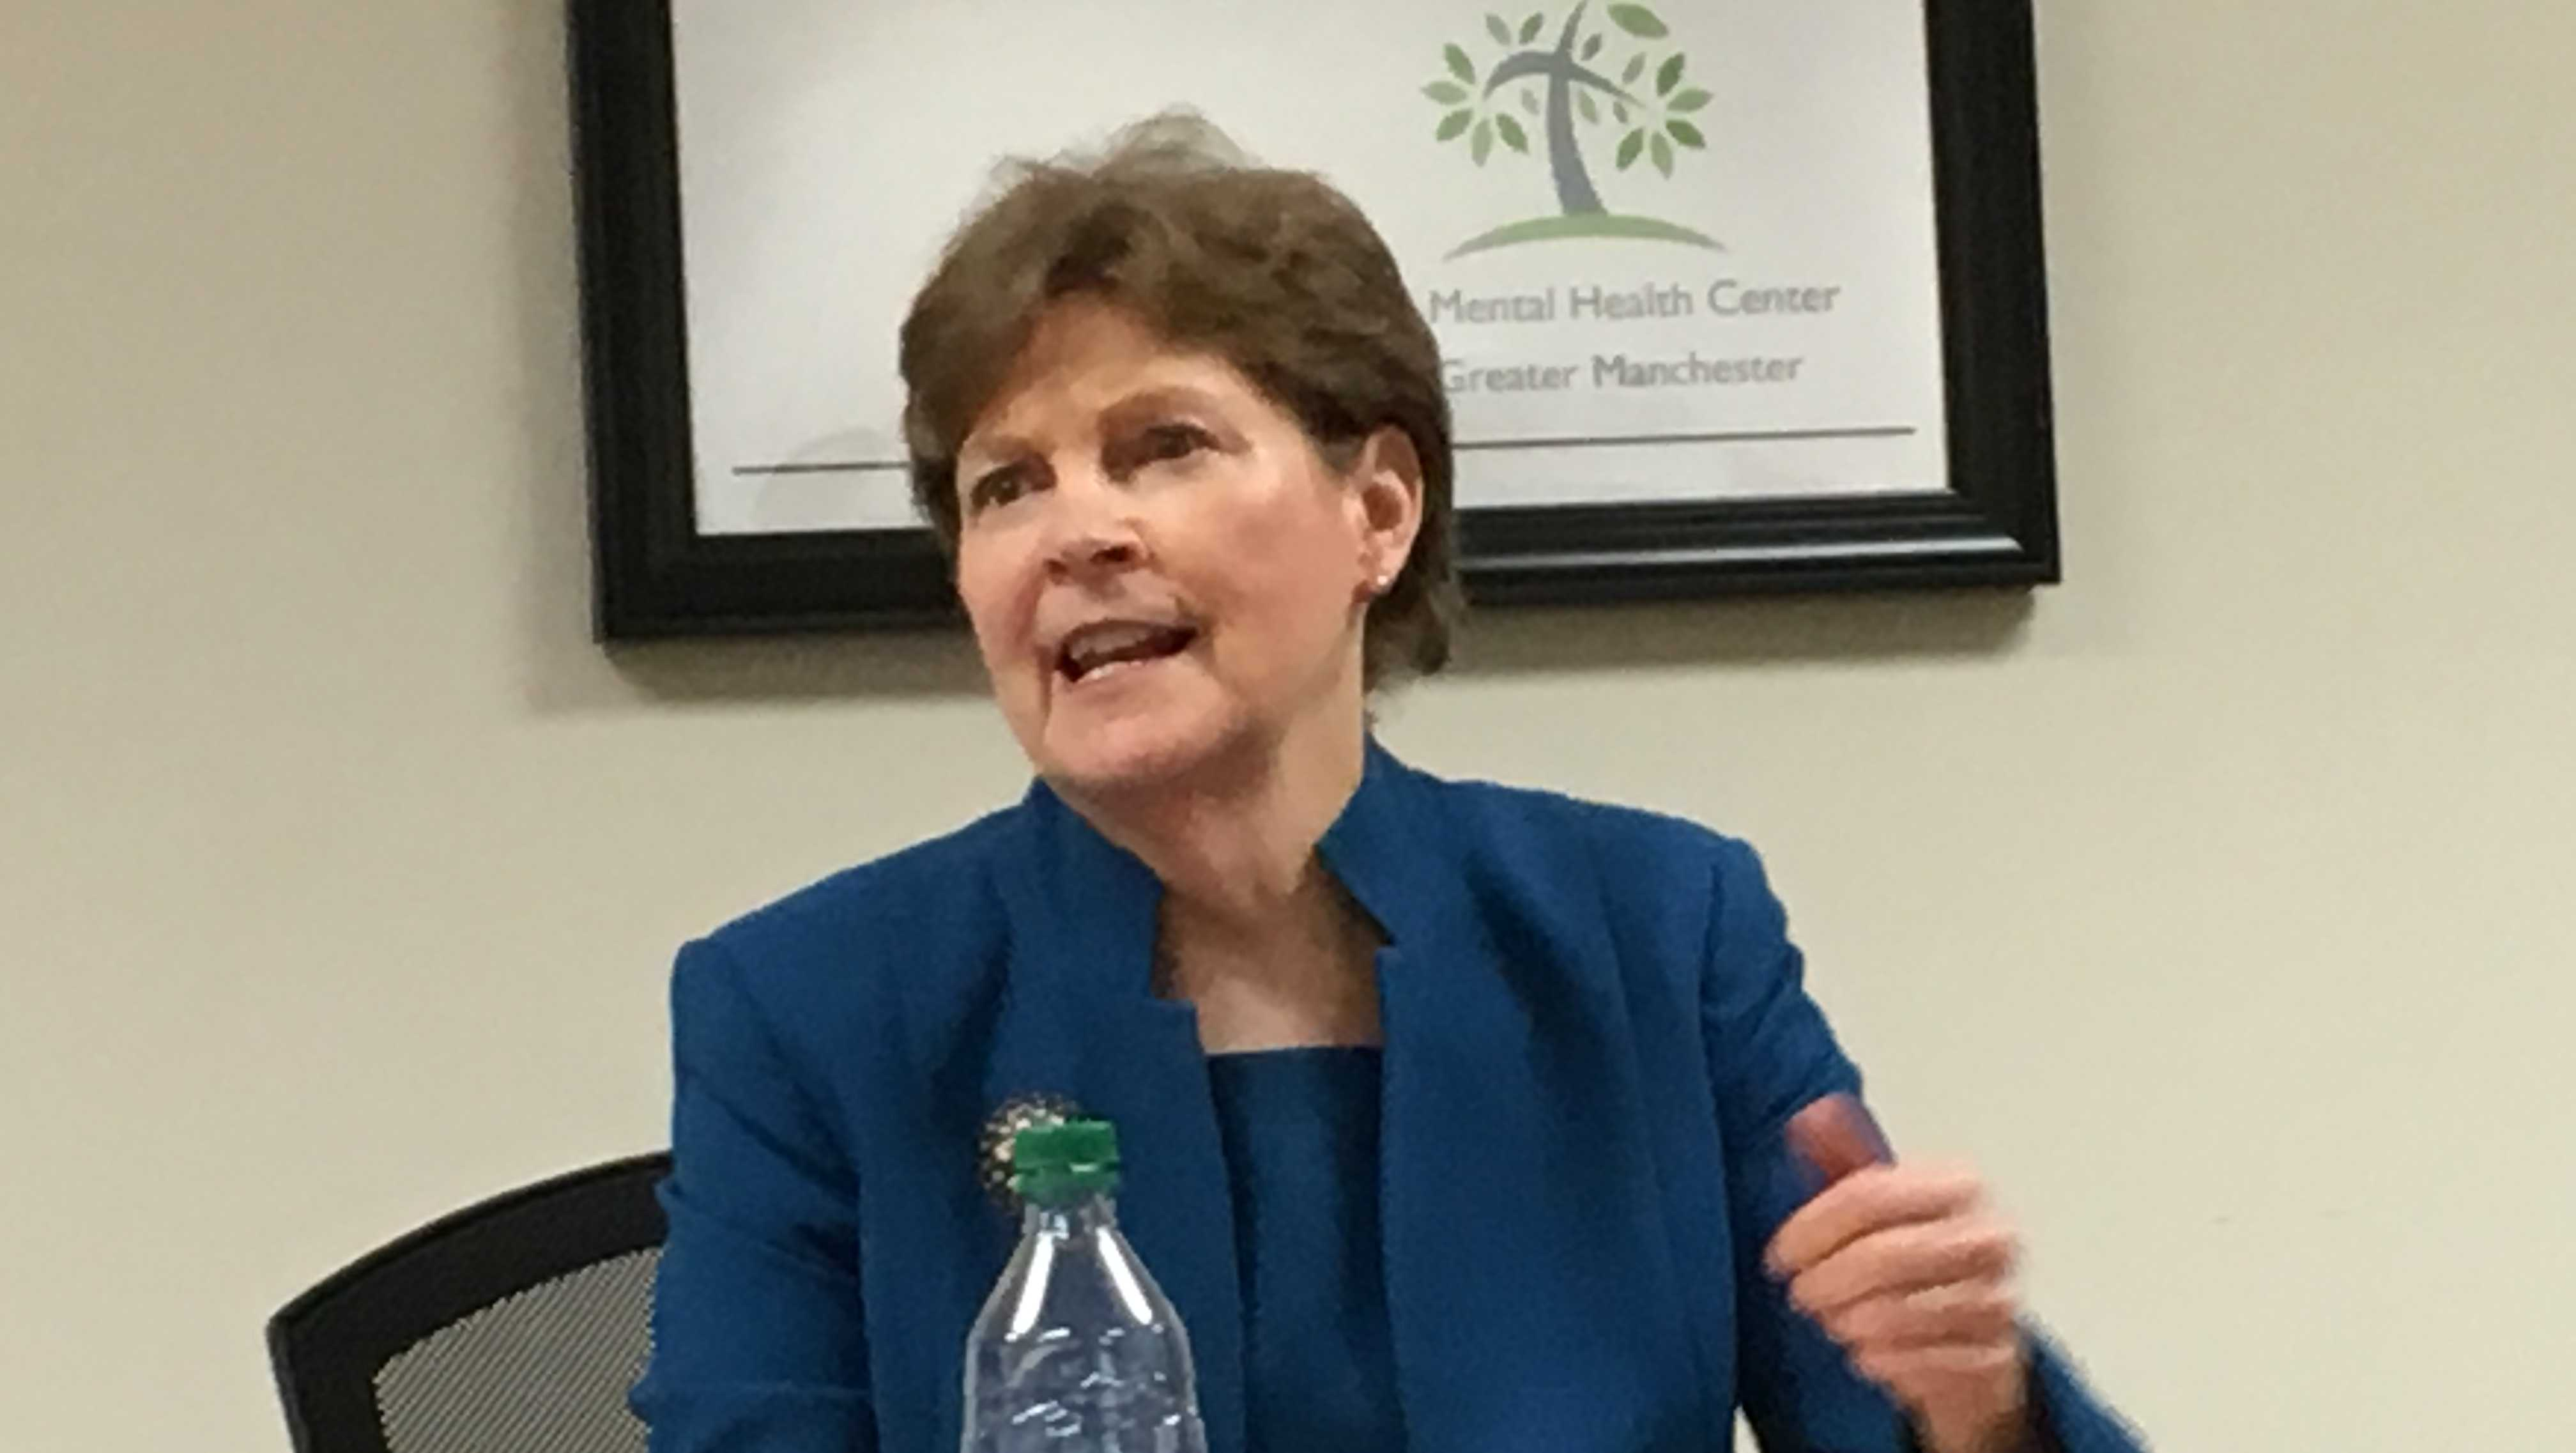 Sen. Jeanne Shaheen speaks with mental health experts in Manchester on Friday about the American Health Care Act